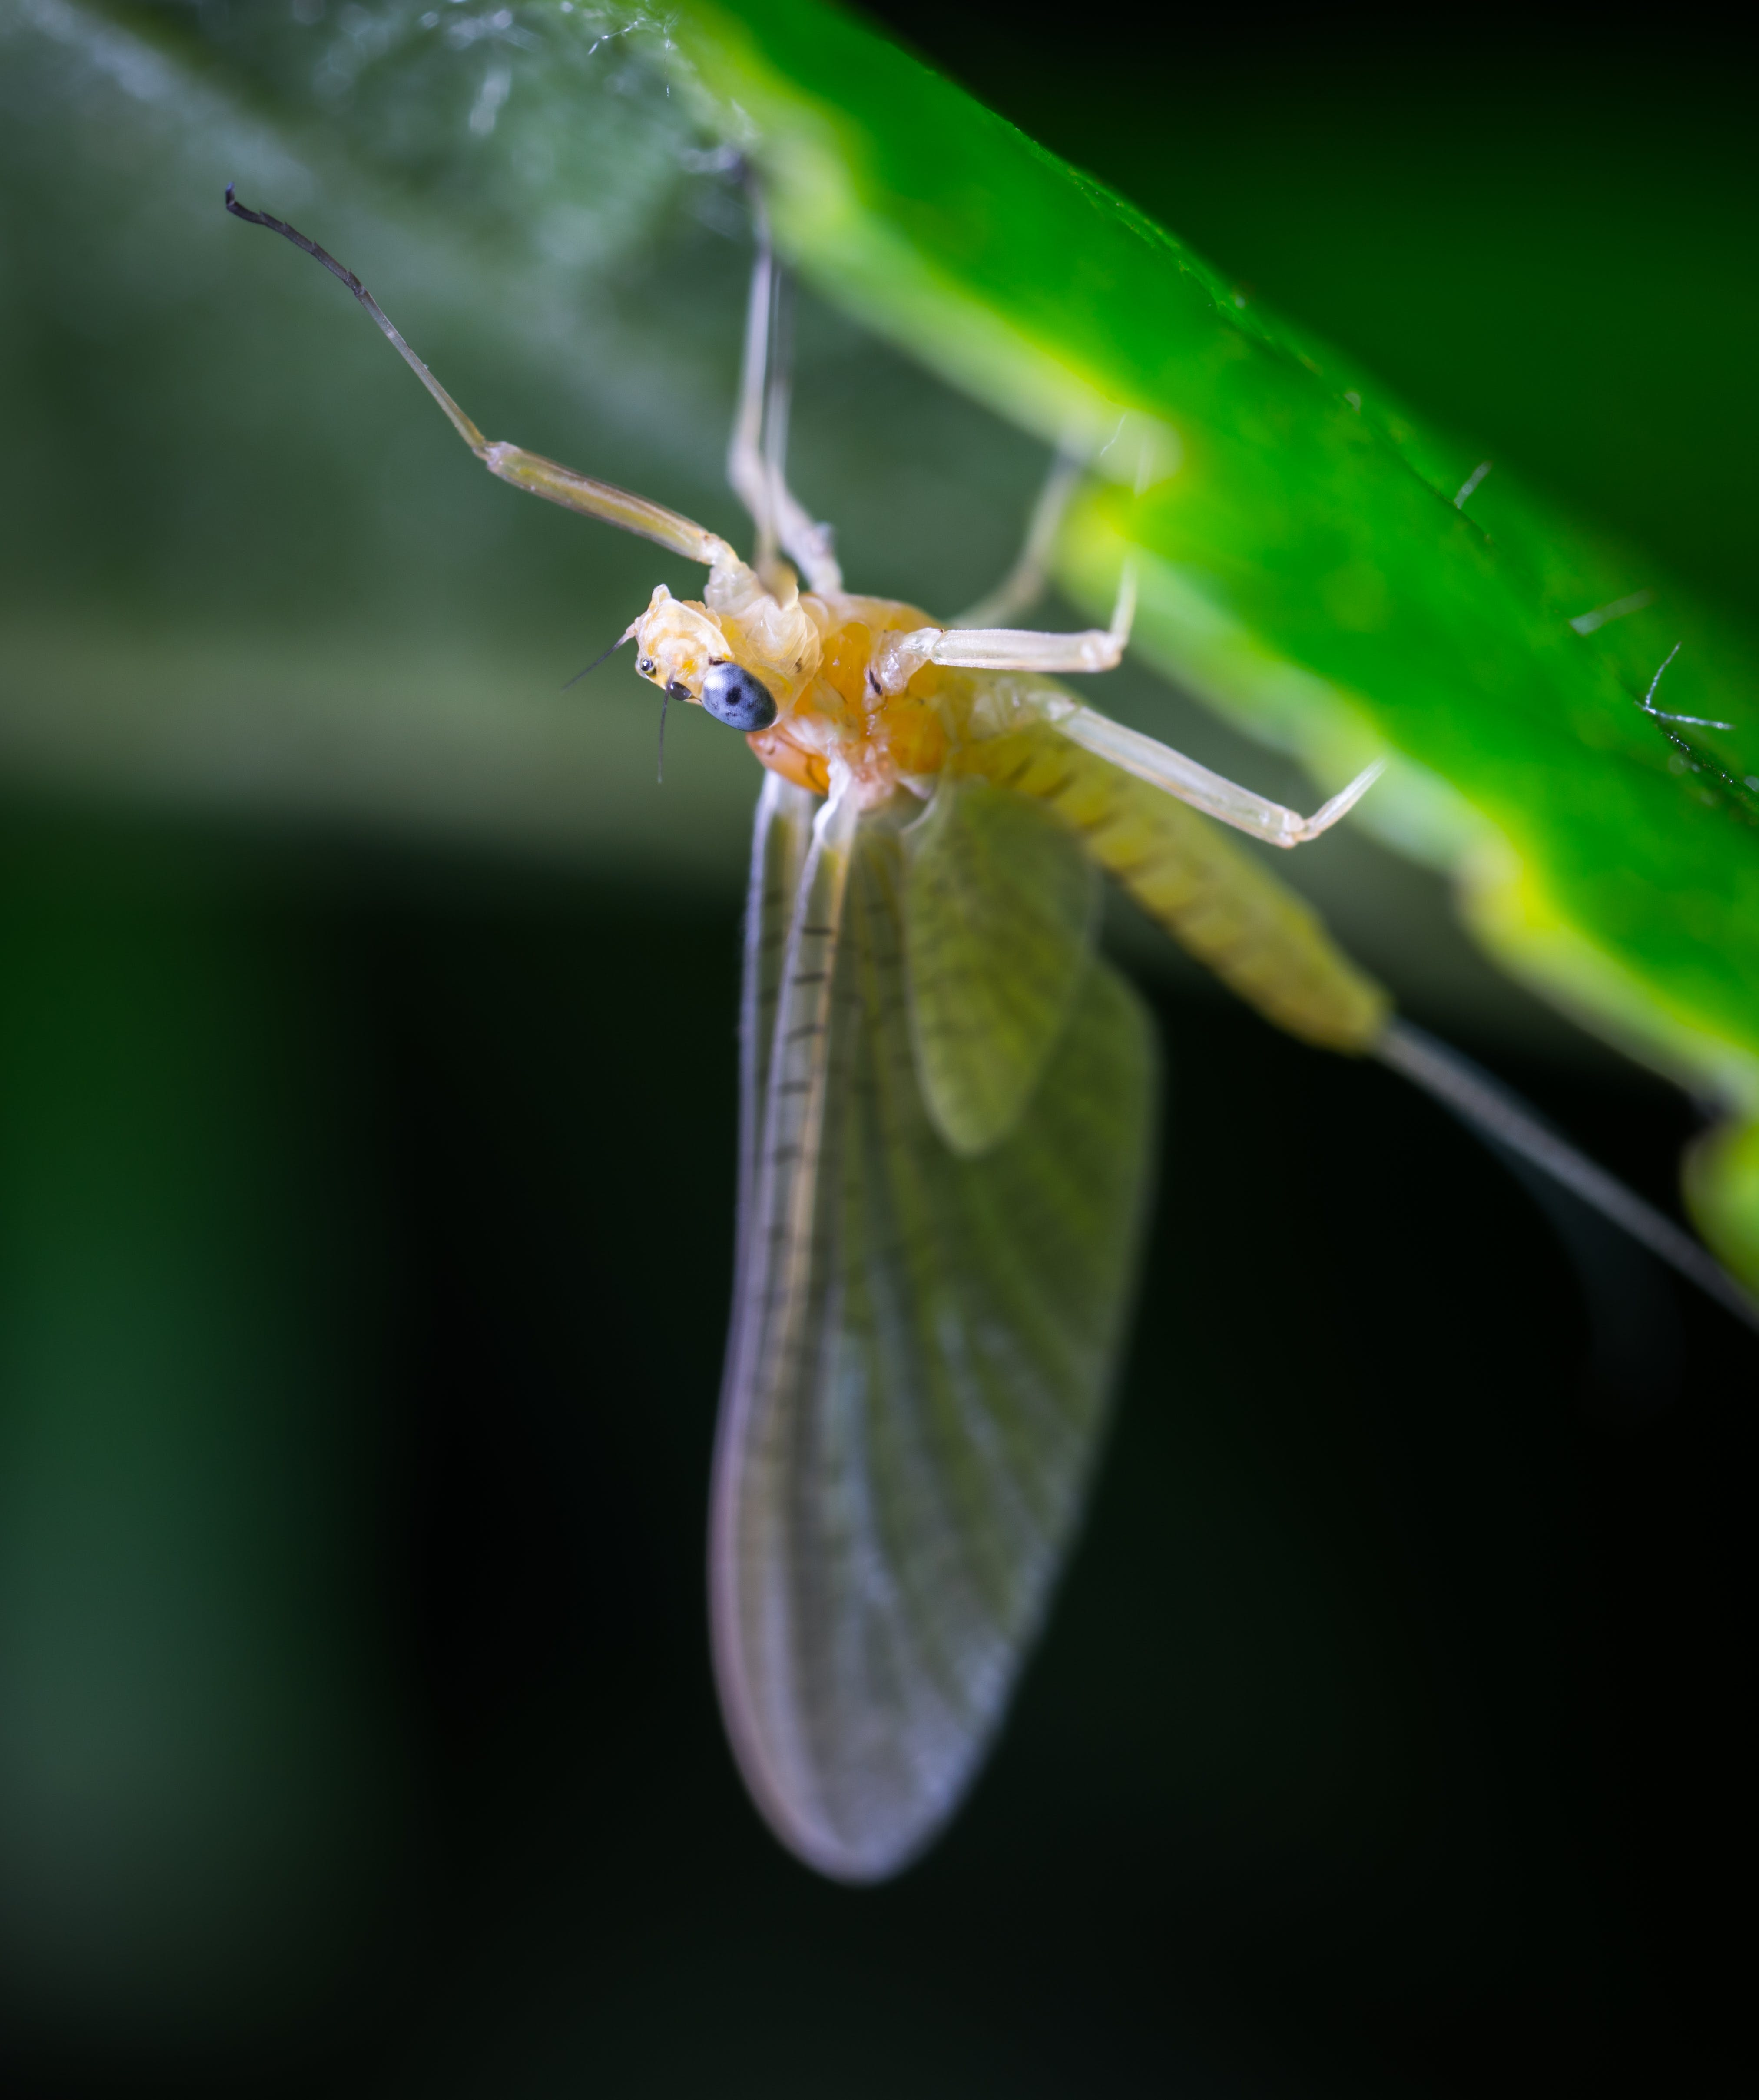 Macro Photo of a Beige Mayfly on Green Leaf